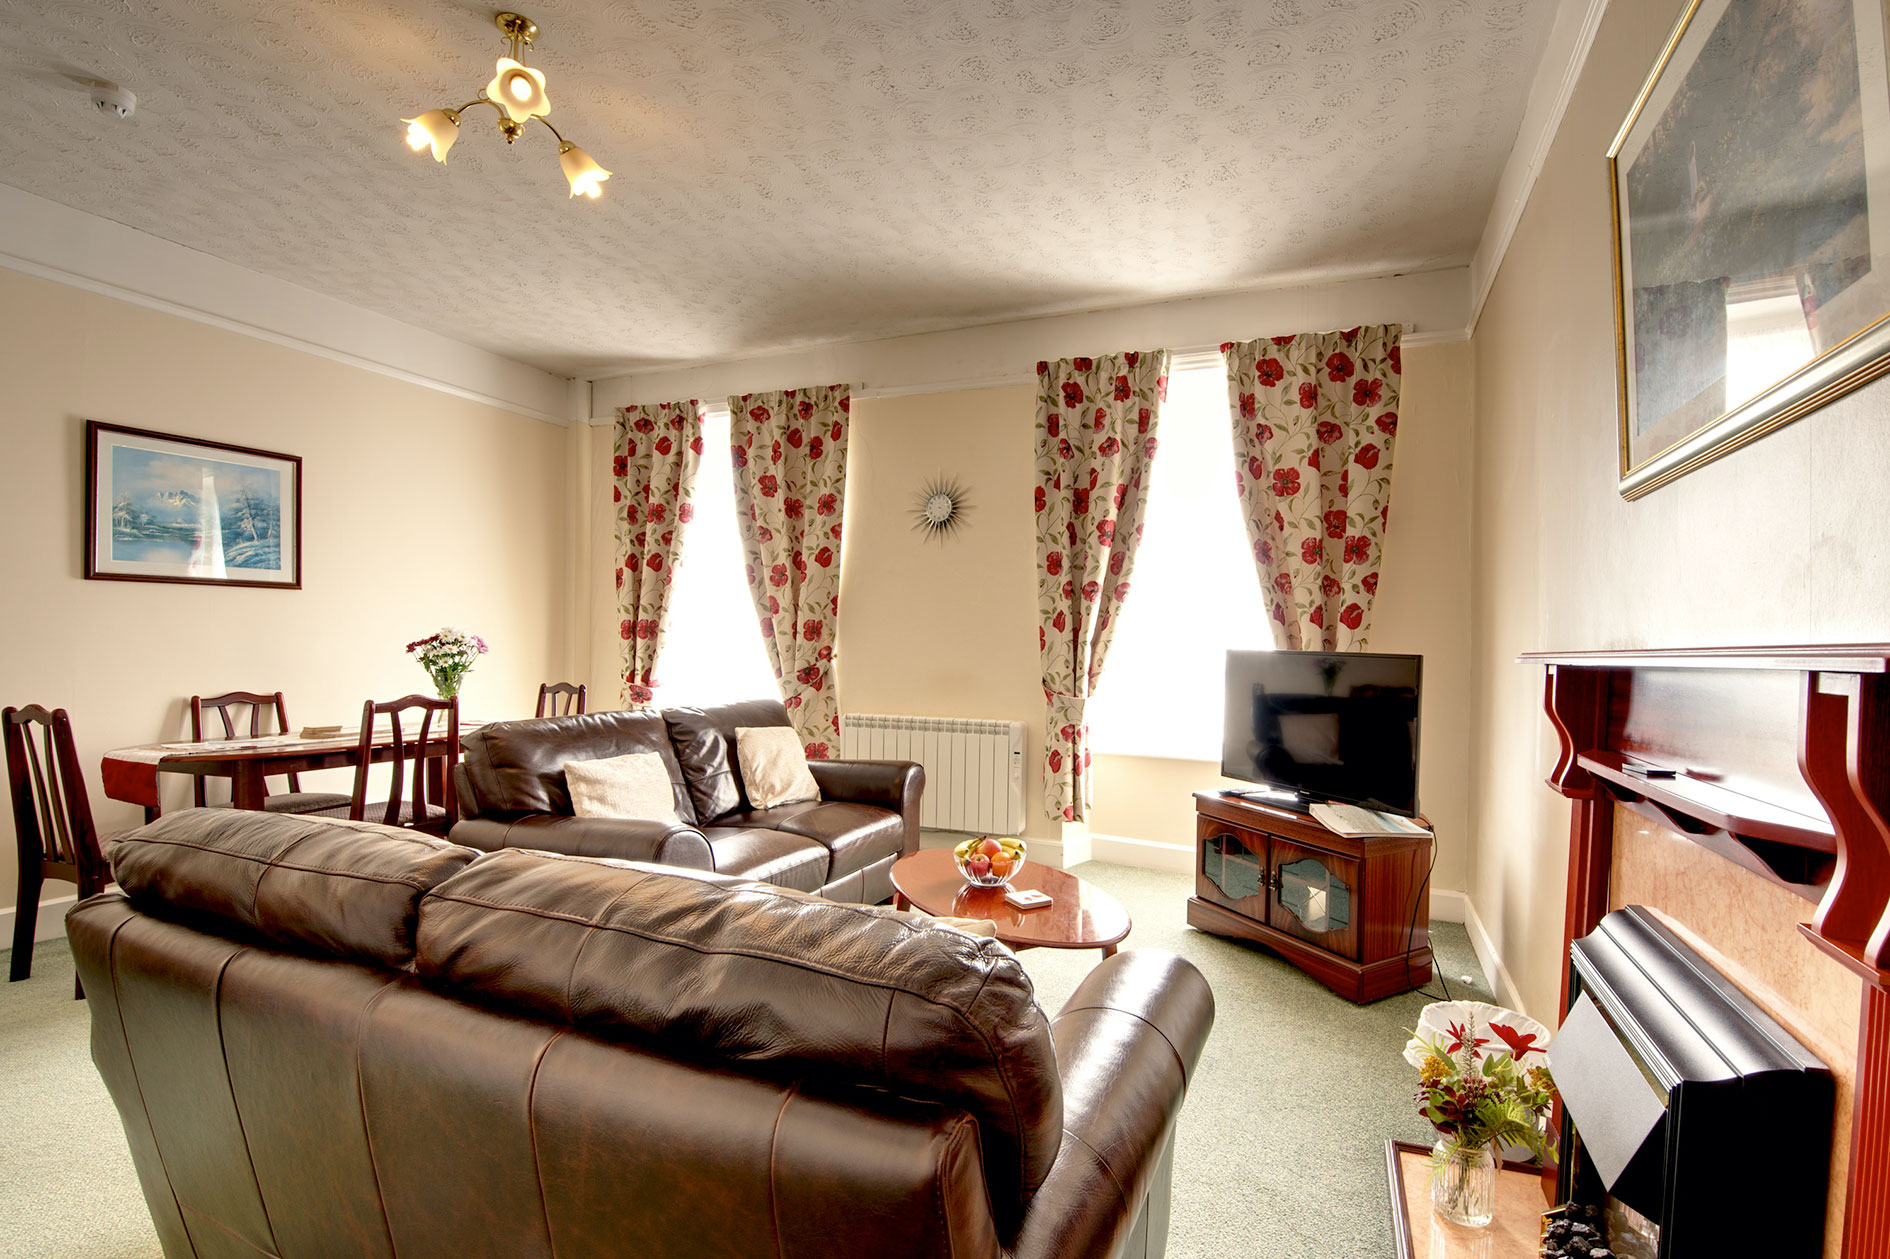 Living Room With Brown Leather Sofas, Tv And Red Floral Curtains